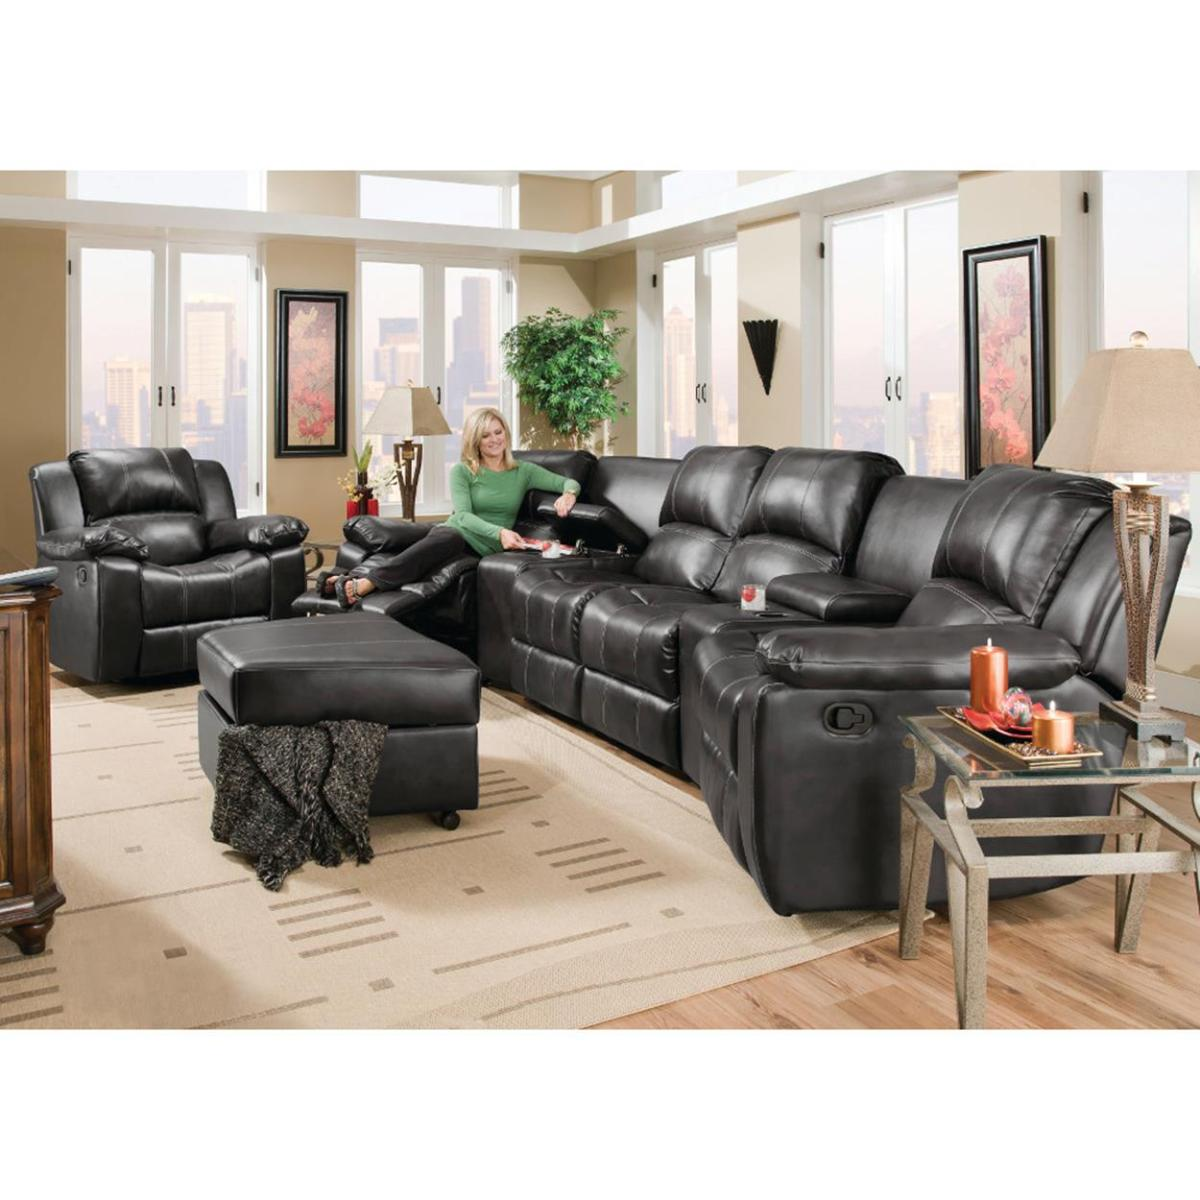 Home Theater Couch Living Room Furniture 12